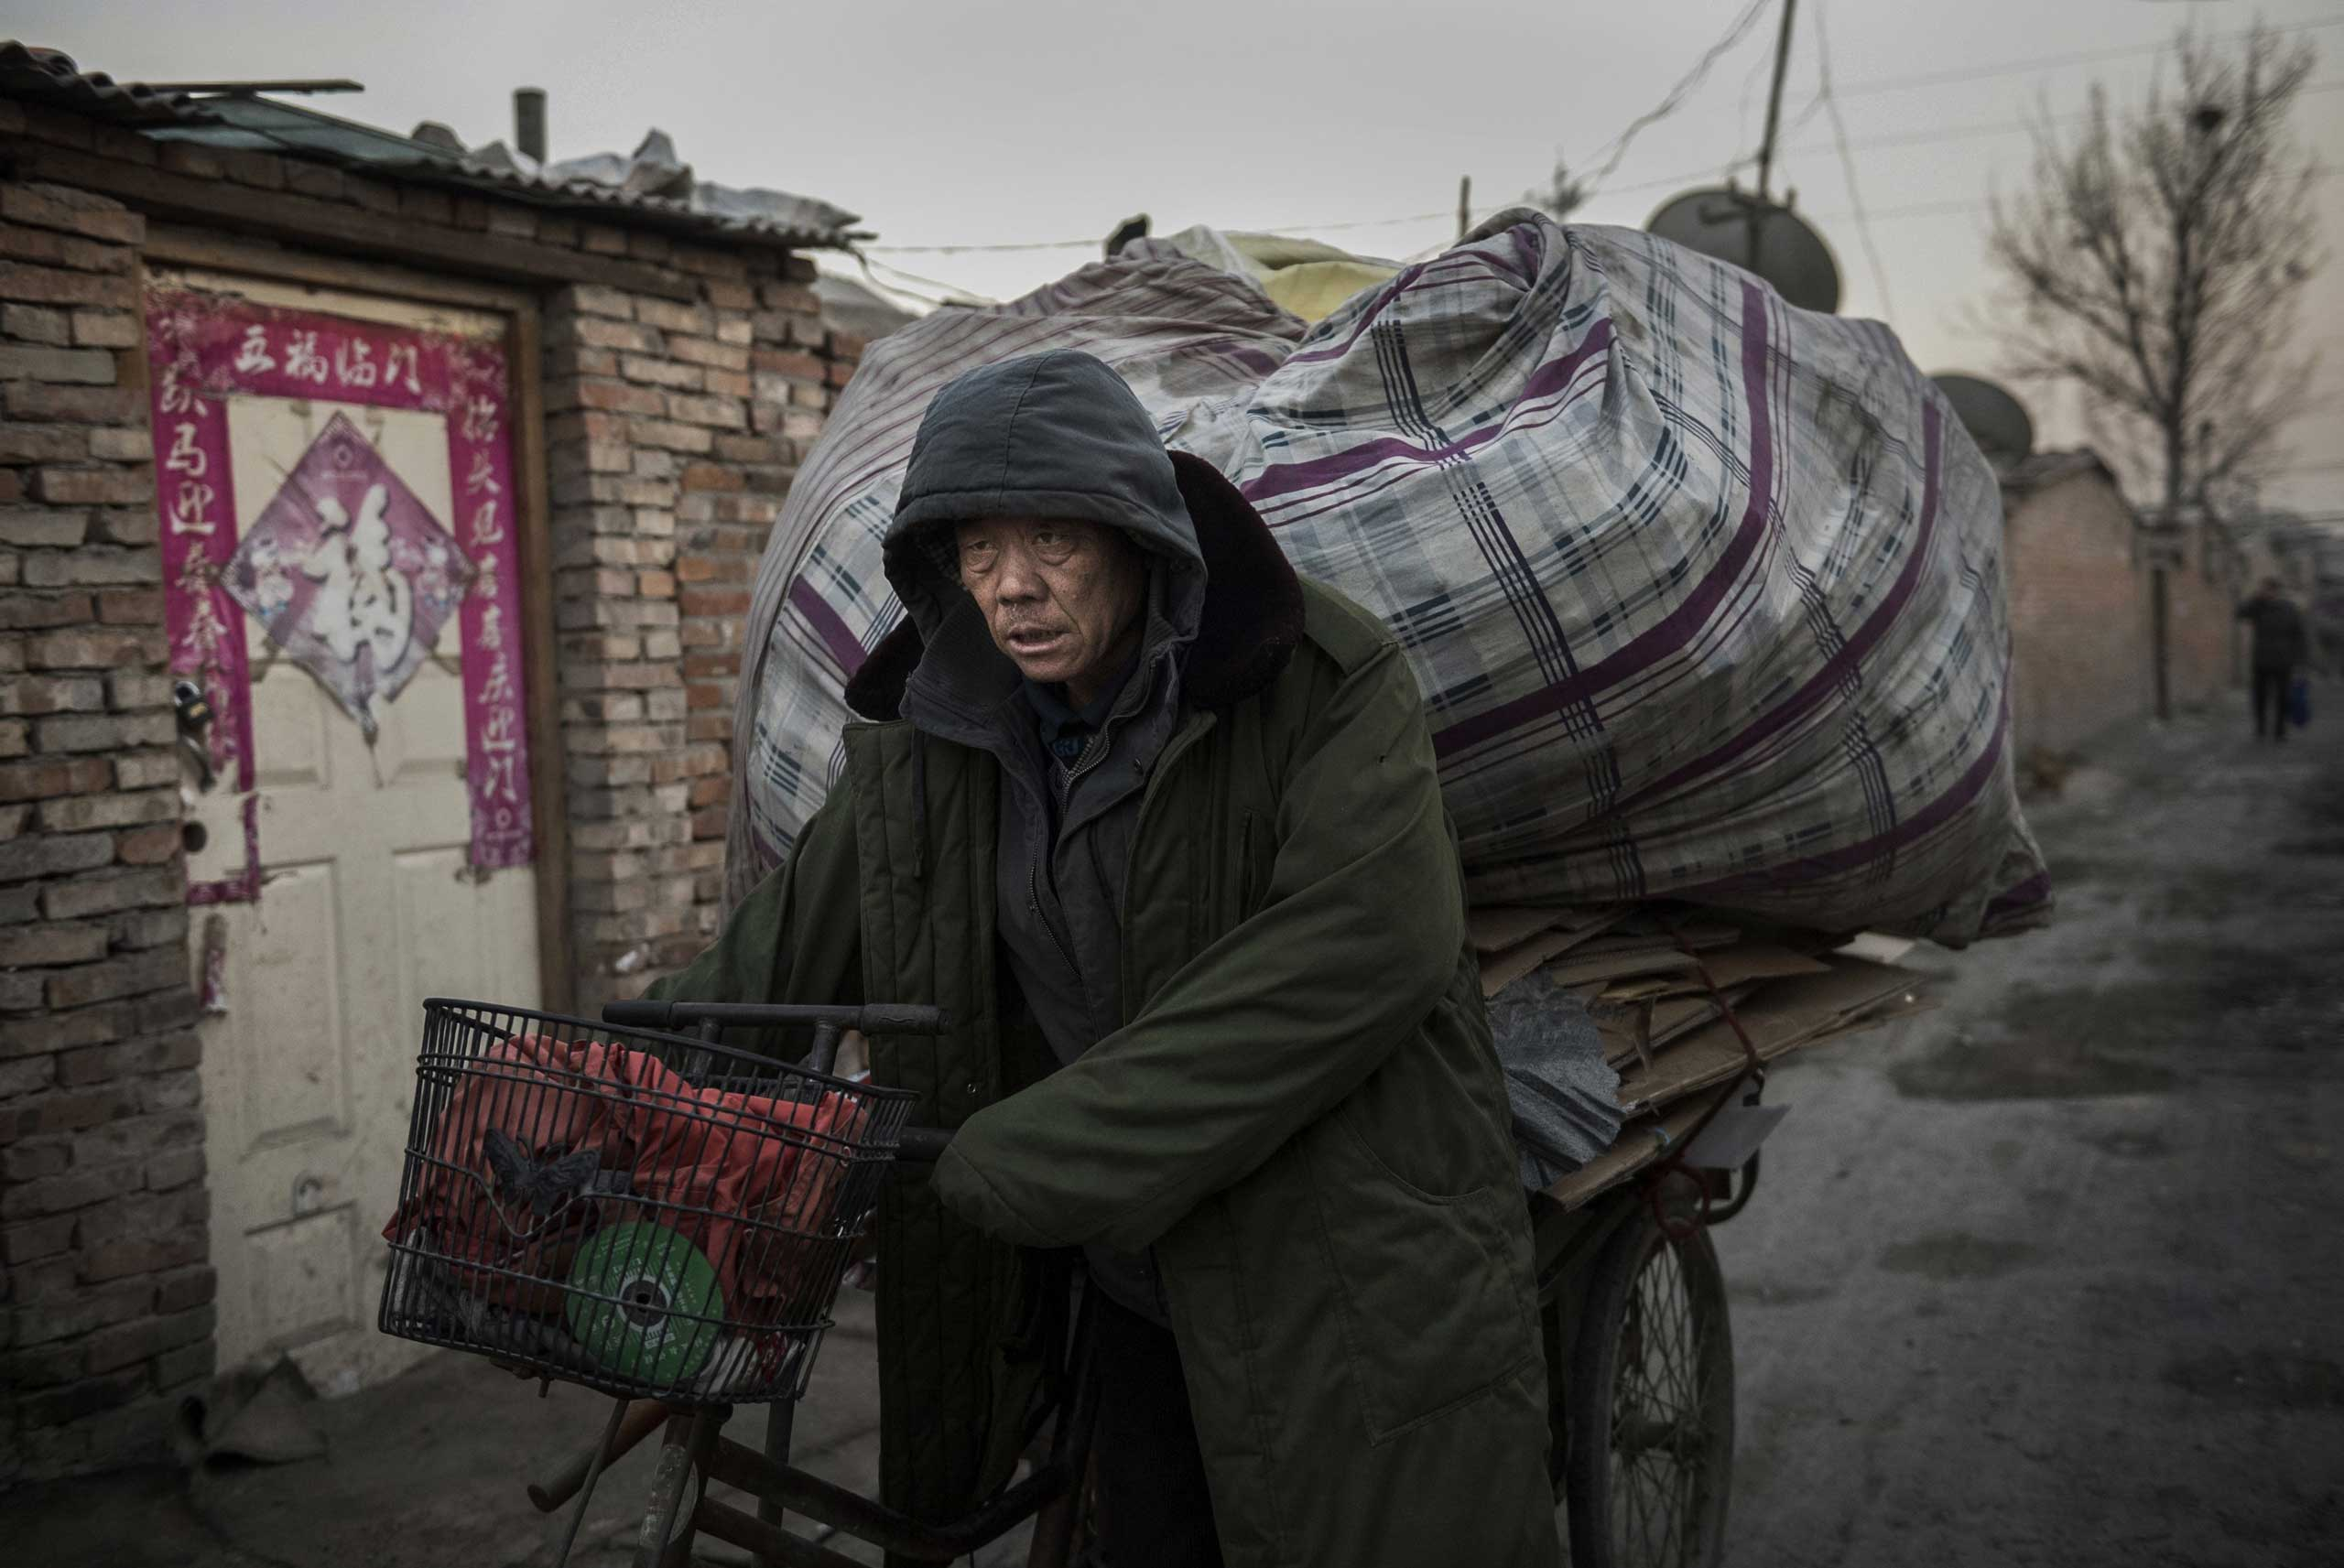 A laborer wheels goods collected to be recycled in the Dong Xiao Kou village on Dec. 11, 2014 in Beijing.